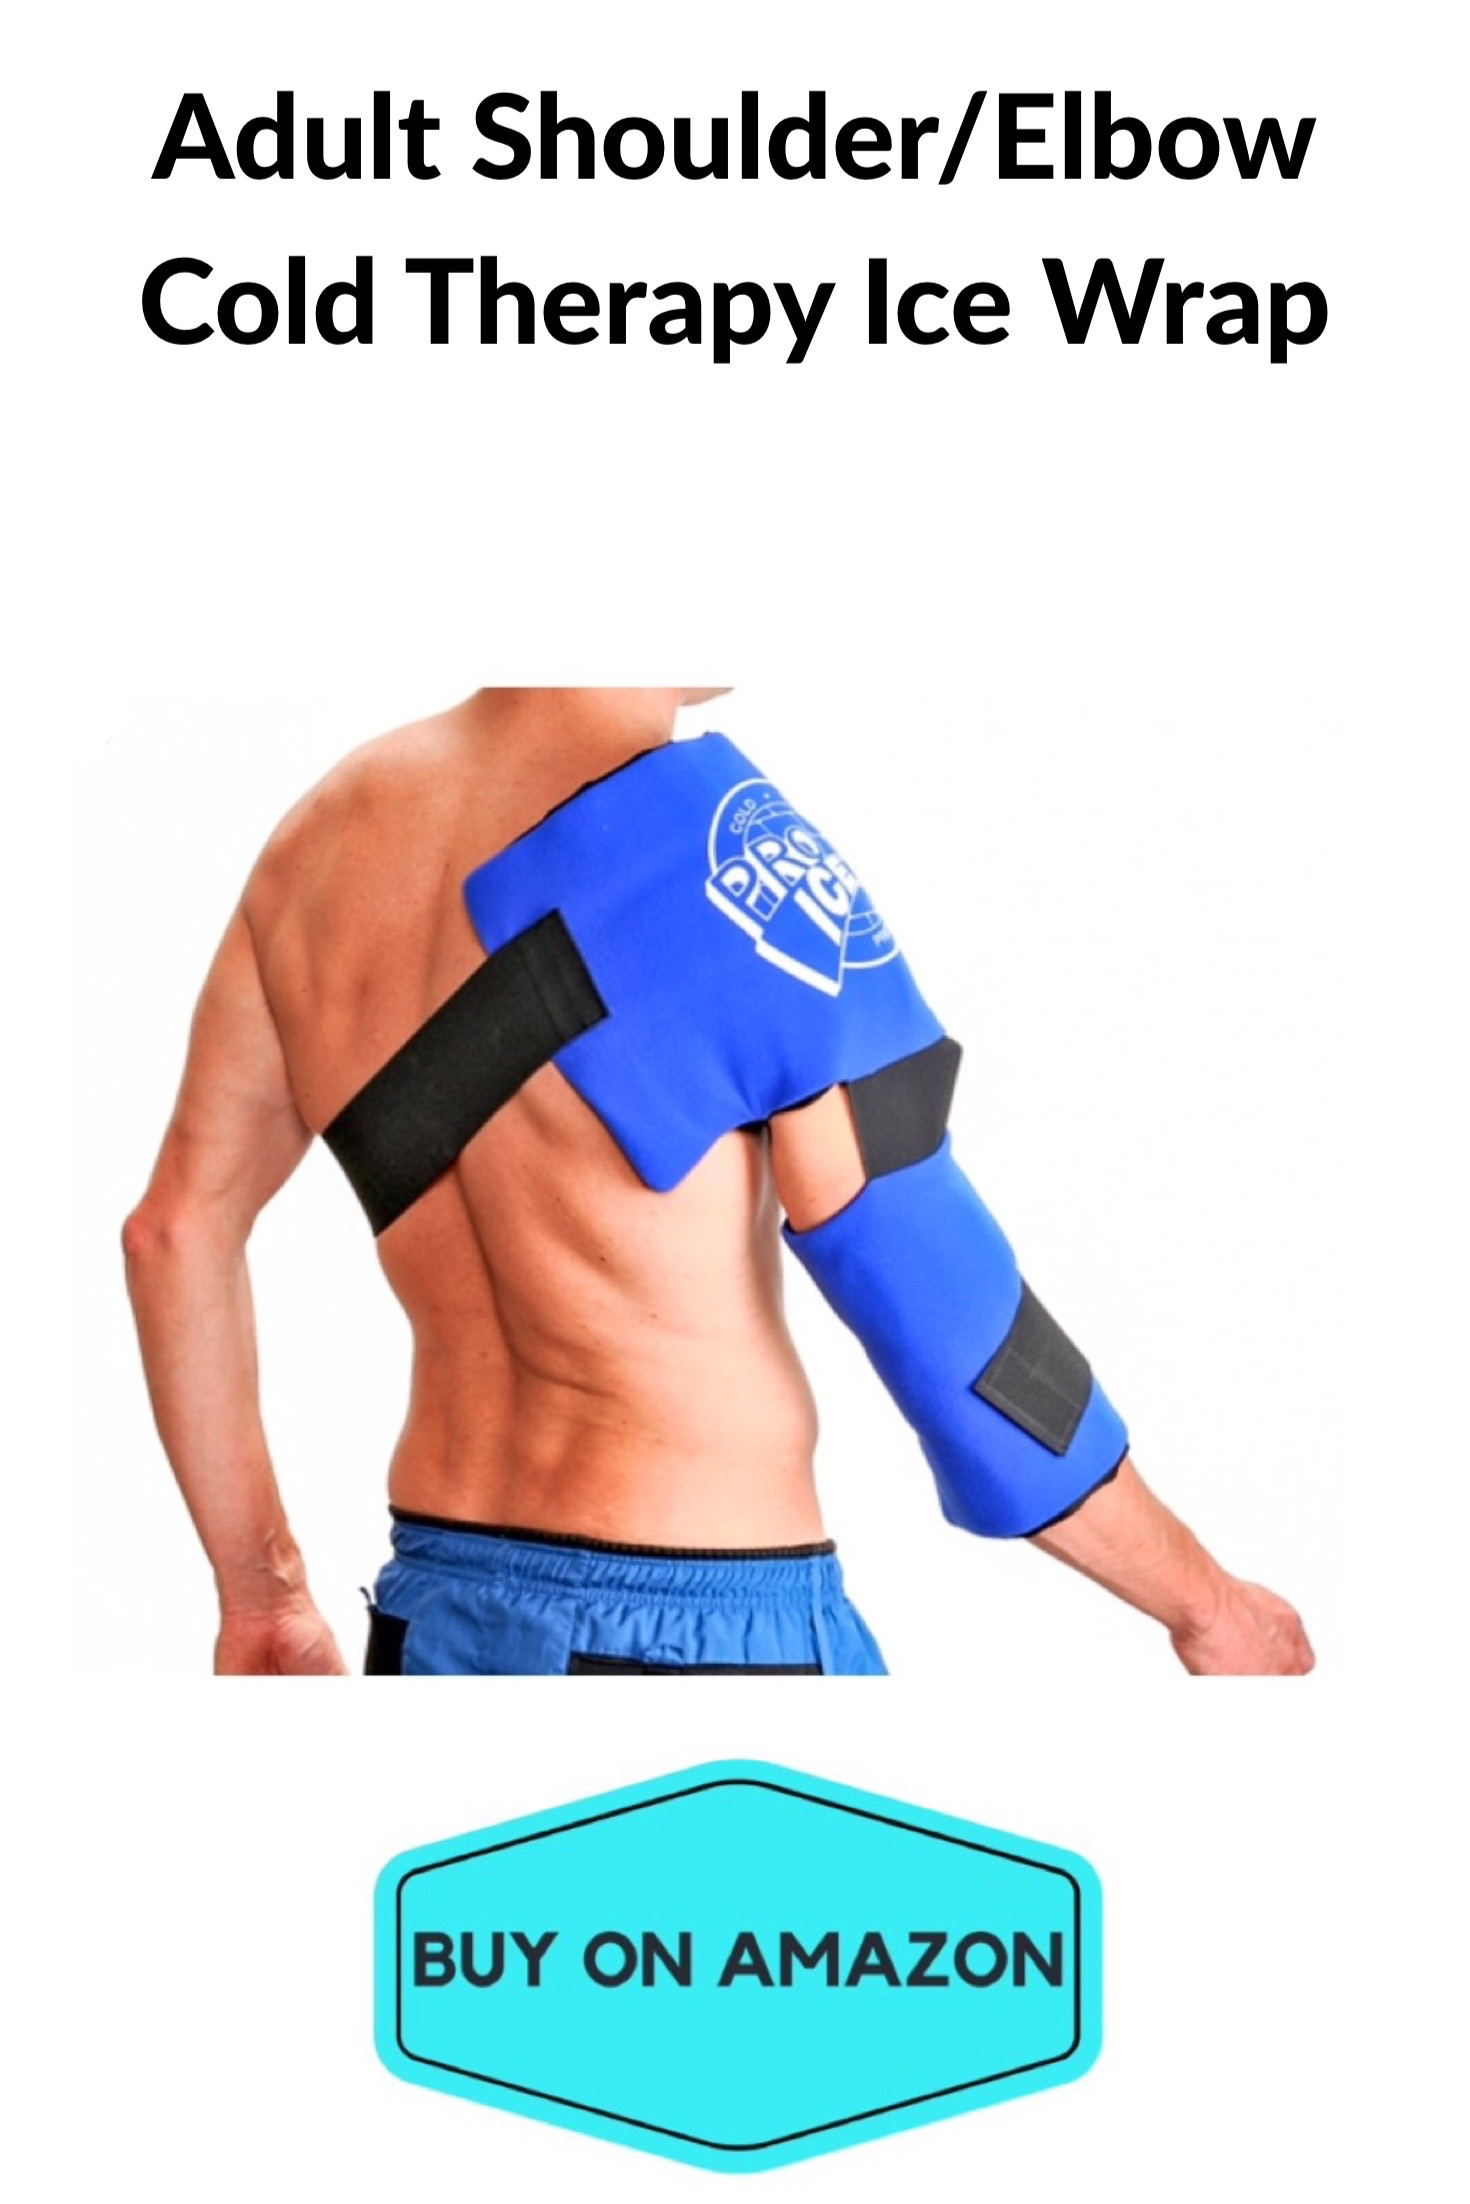 Adult Shoulder/Elbow Cold Therapy Ice Wrap